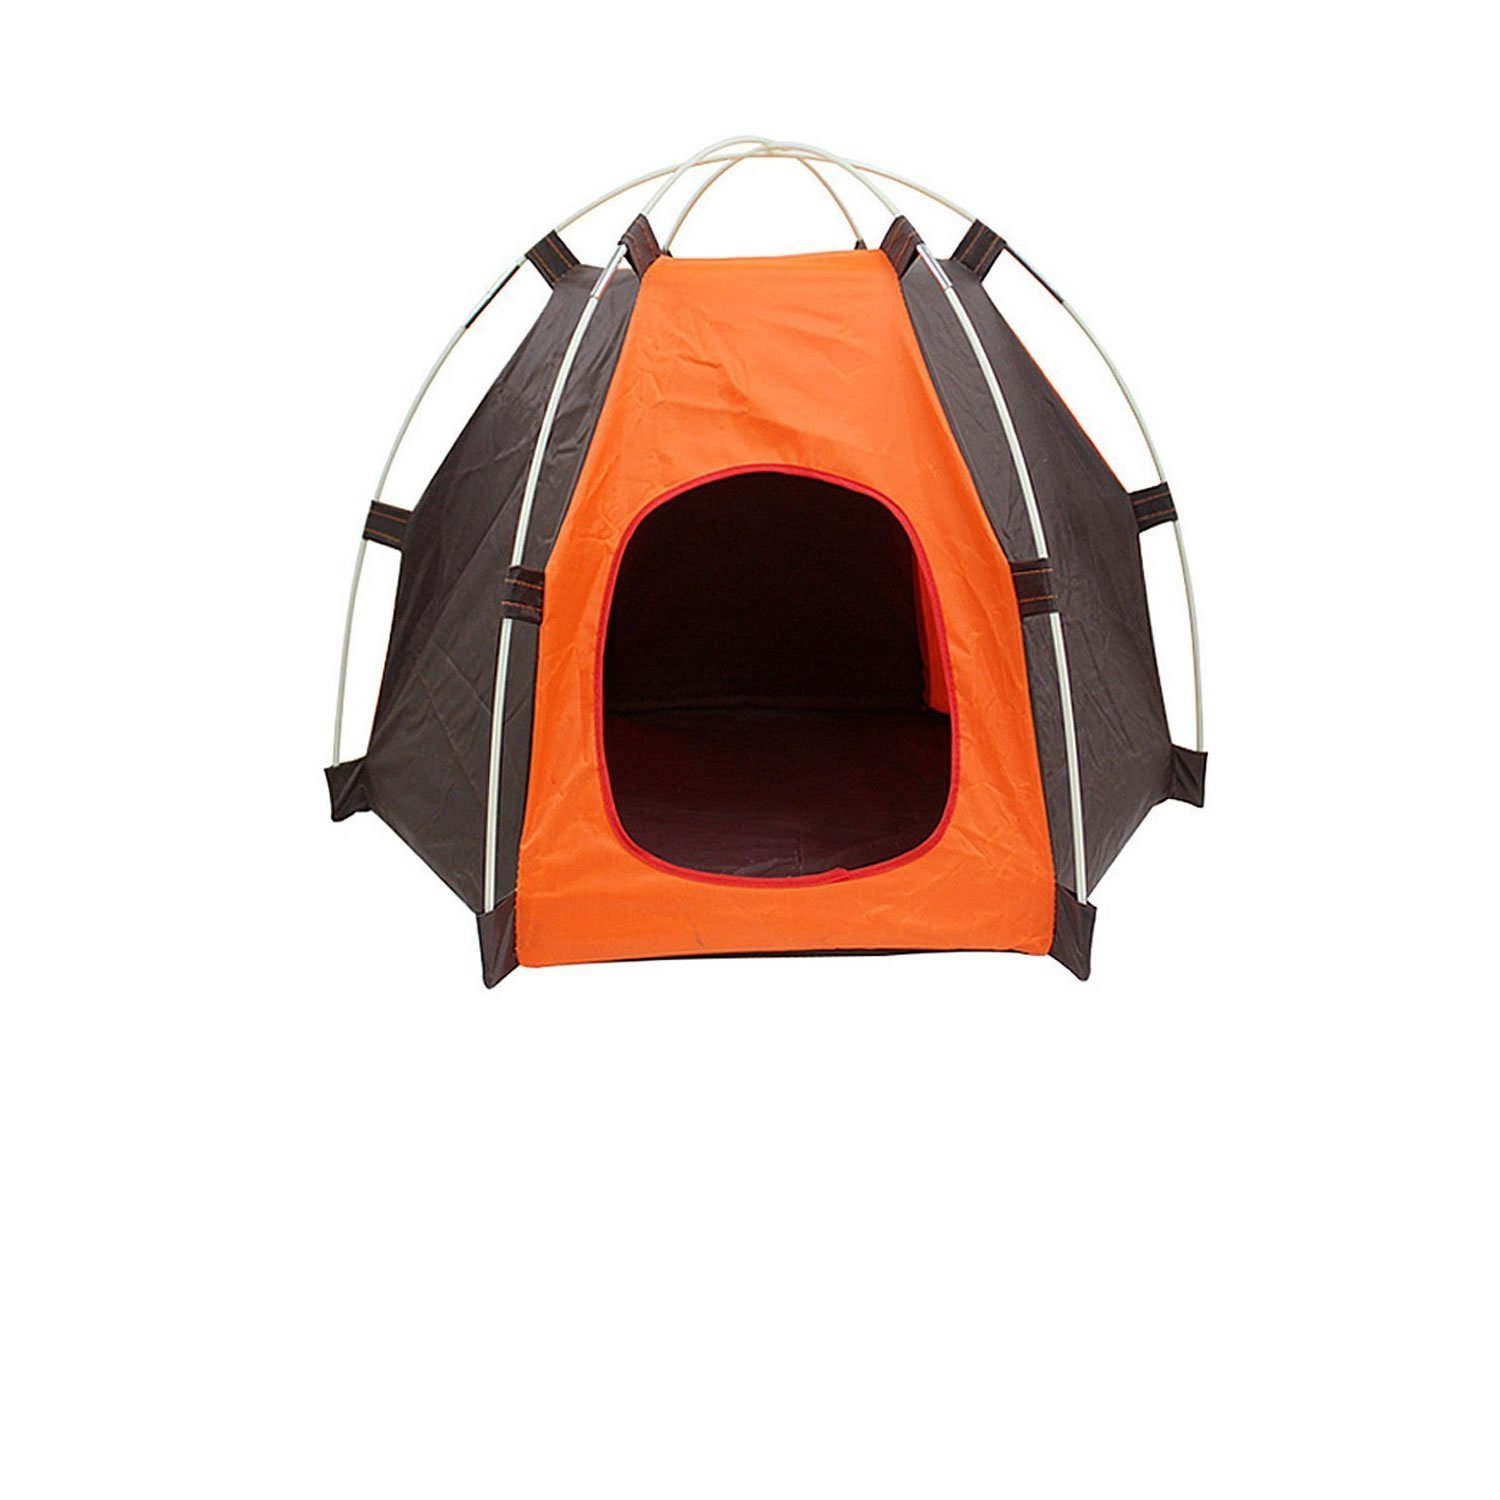 House tent for pet